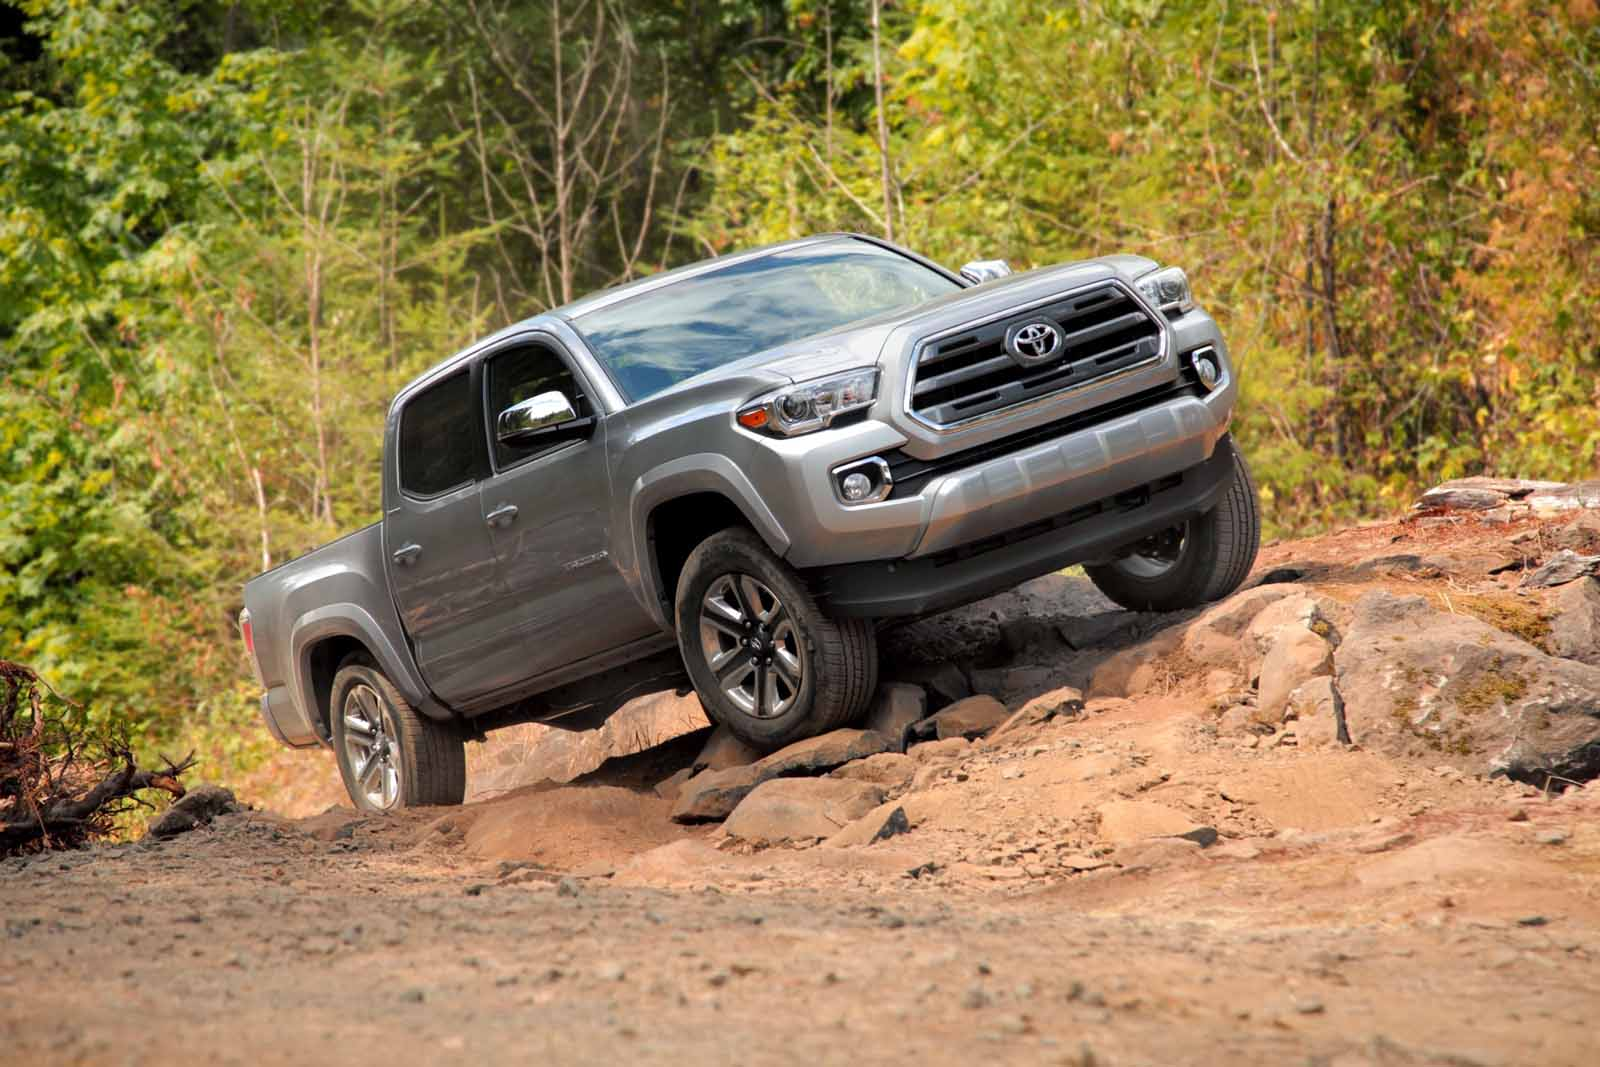 2016 Toyota Tacoma Pricing, Power and Specs Released